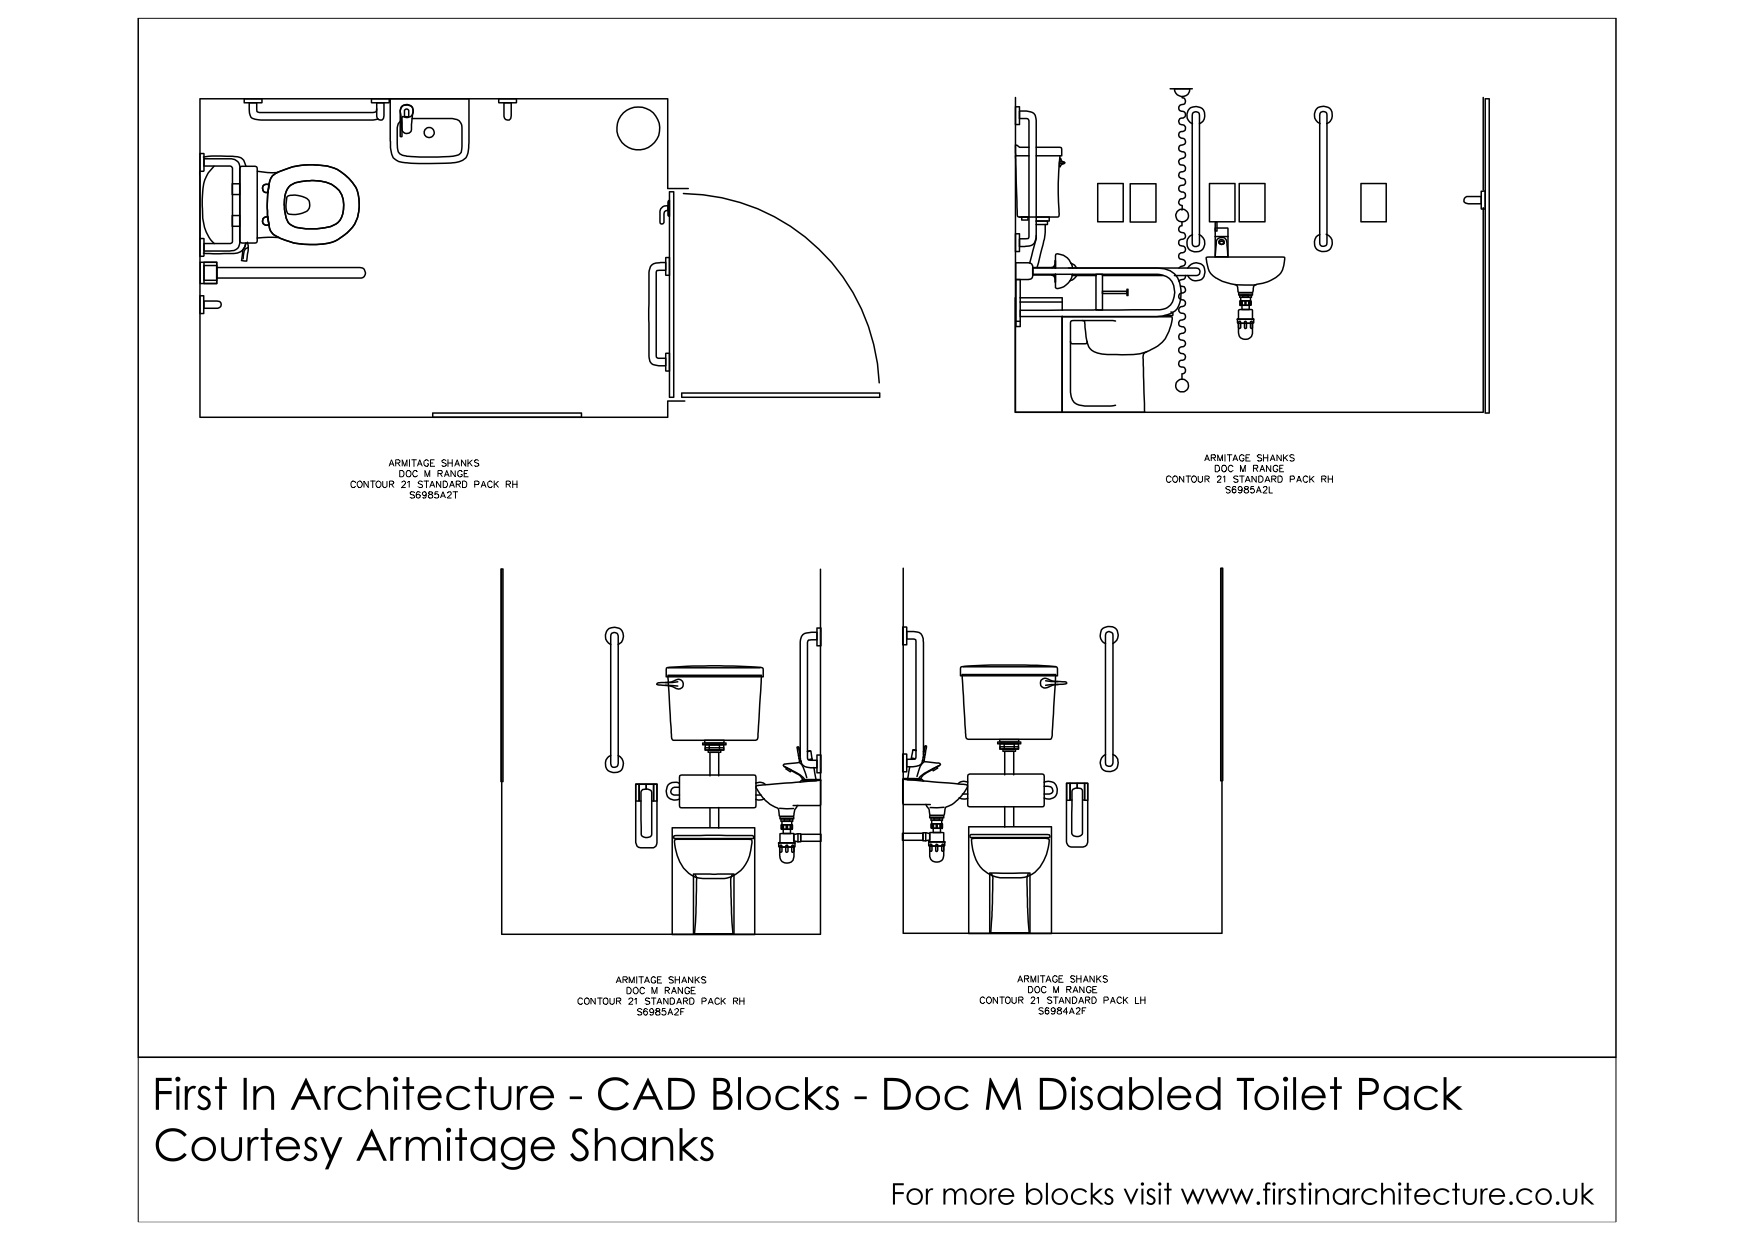 Urinal Front Elevation : Free cad blocks doc m disabled toilet first in